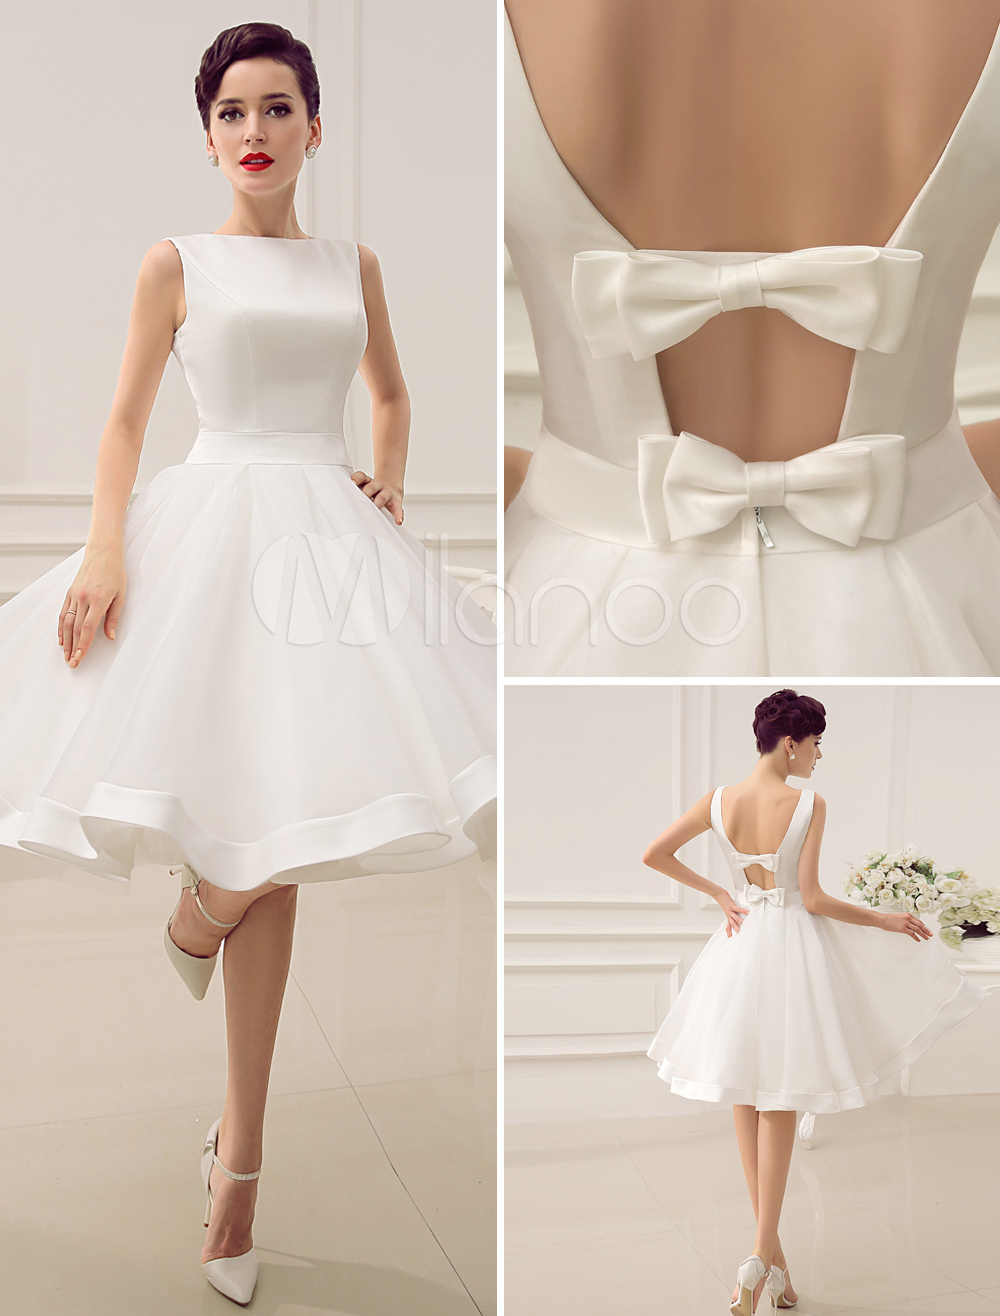 Out backless satin short wedding dress with bow decor sash cut out backless satin short wedding dress with bow decor sash milanoo junglespirit Gallery